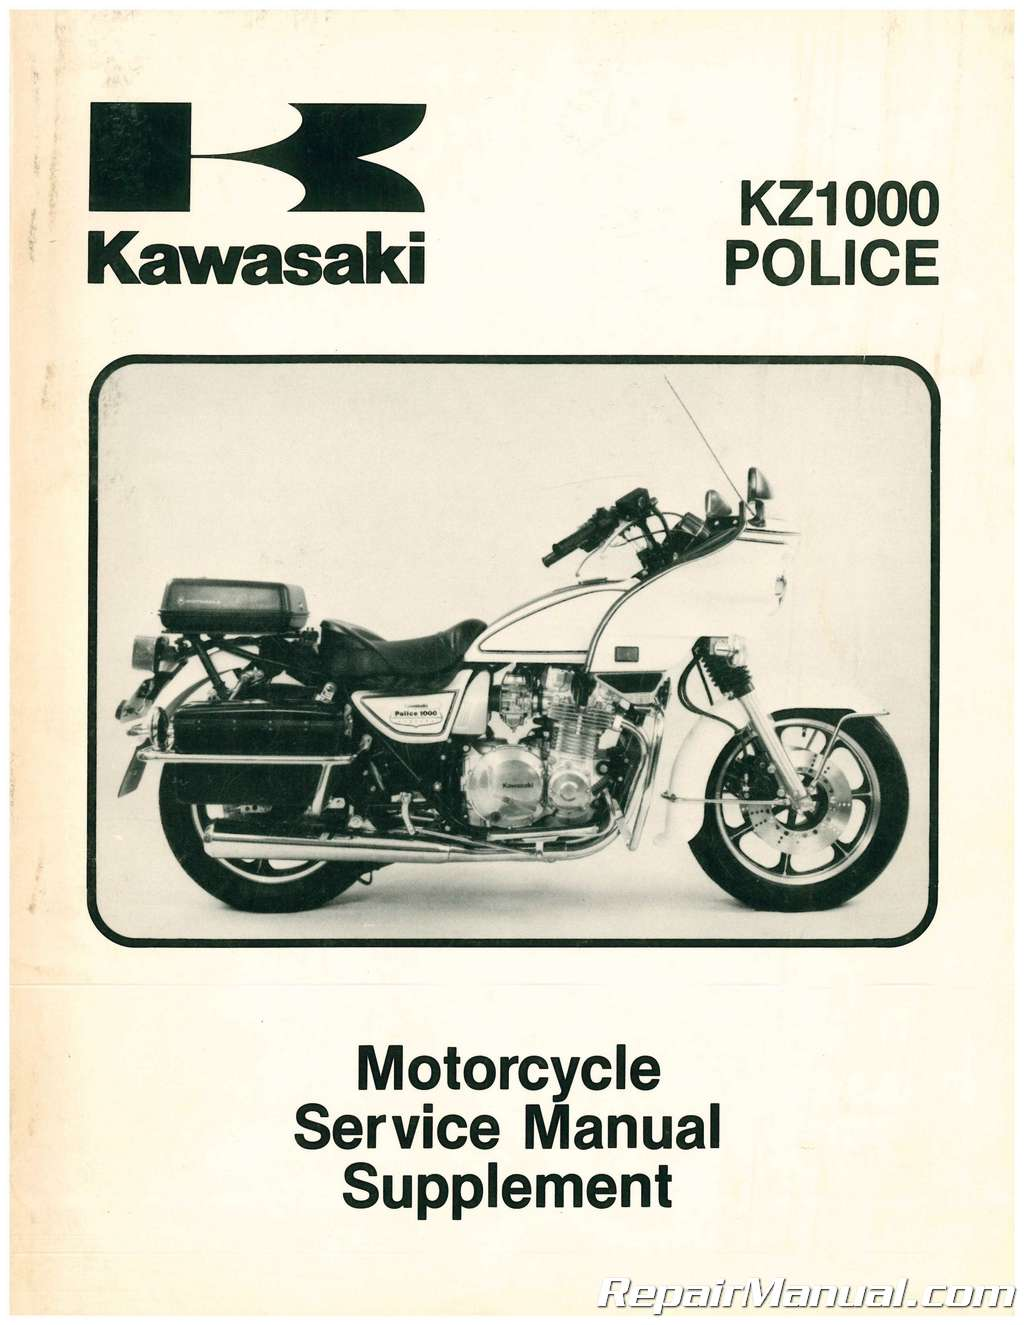 Used 1983 Kawasaki KZ1000 P3 Police Motorcycle Service Manual Supplement